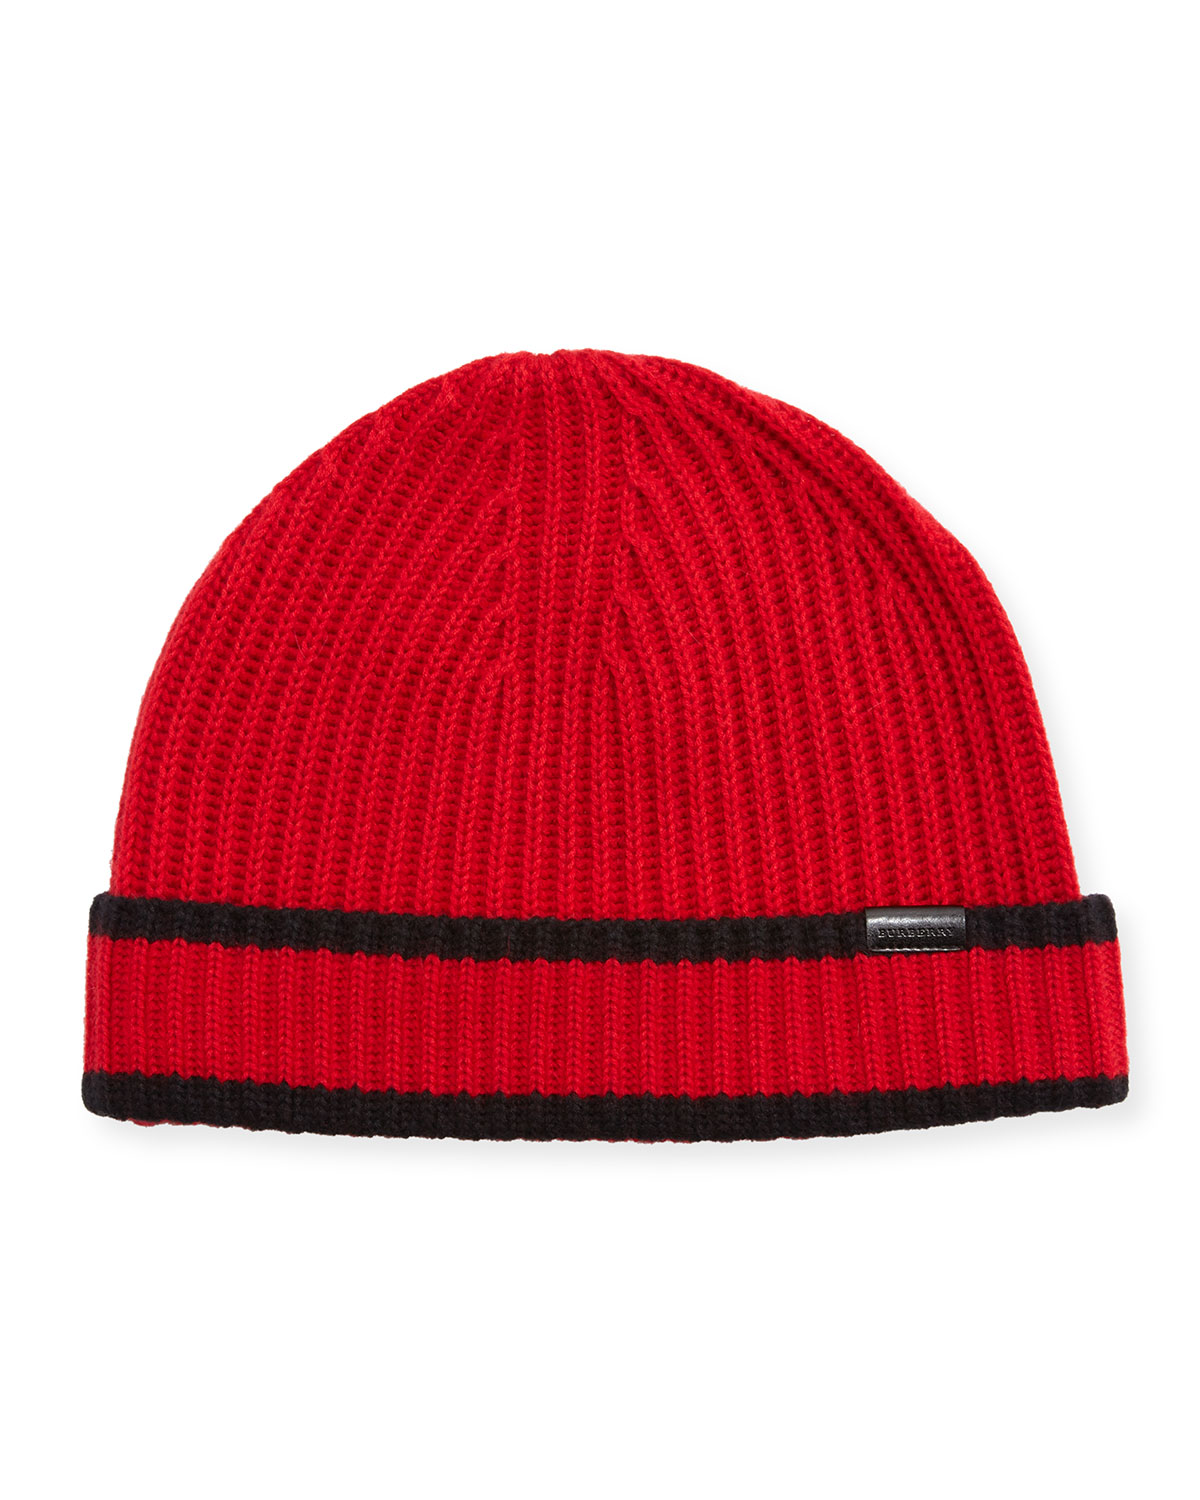 f7a14c2336c Burberry Men s Ribbed Cashmere Beanie Hat